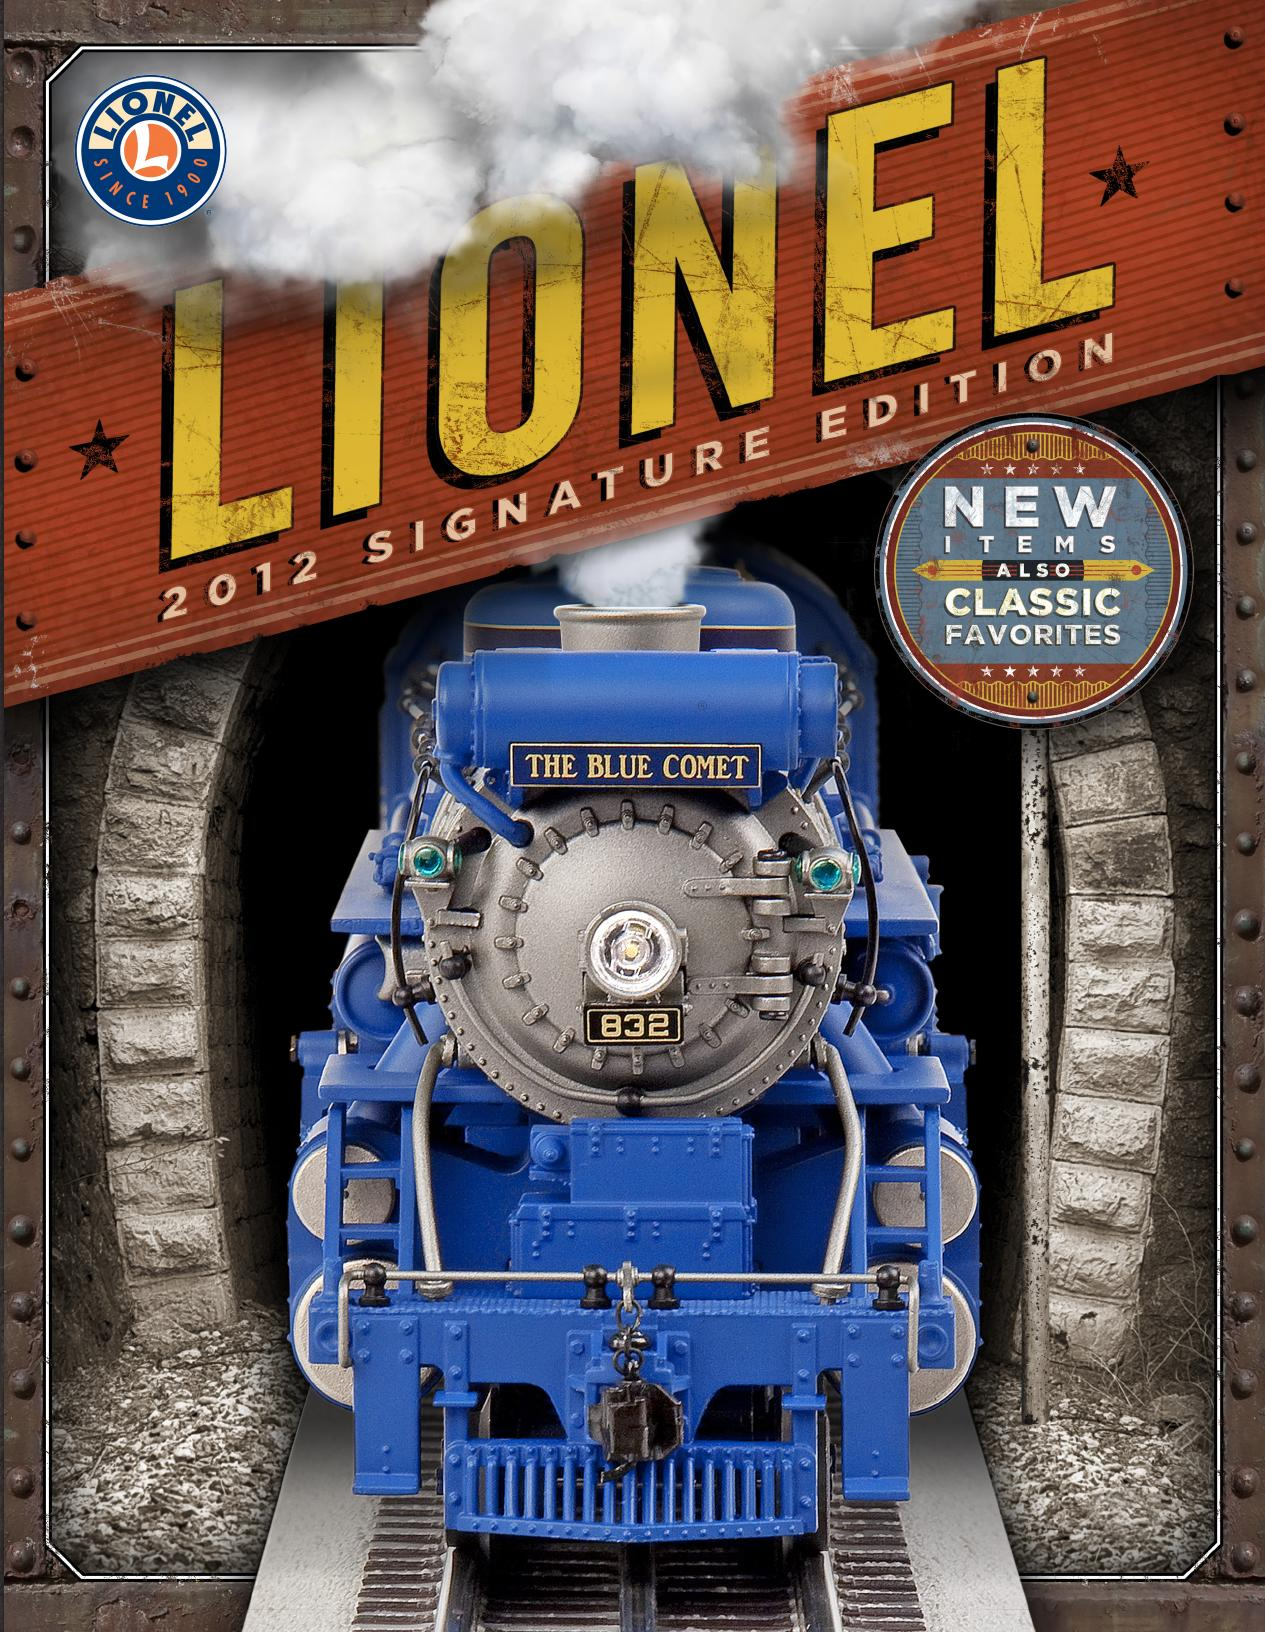 Lionel Catalogs - Signature Edition 2012